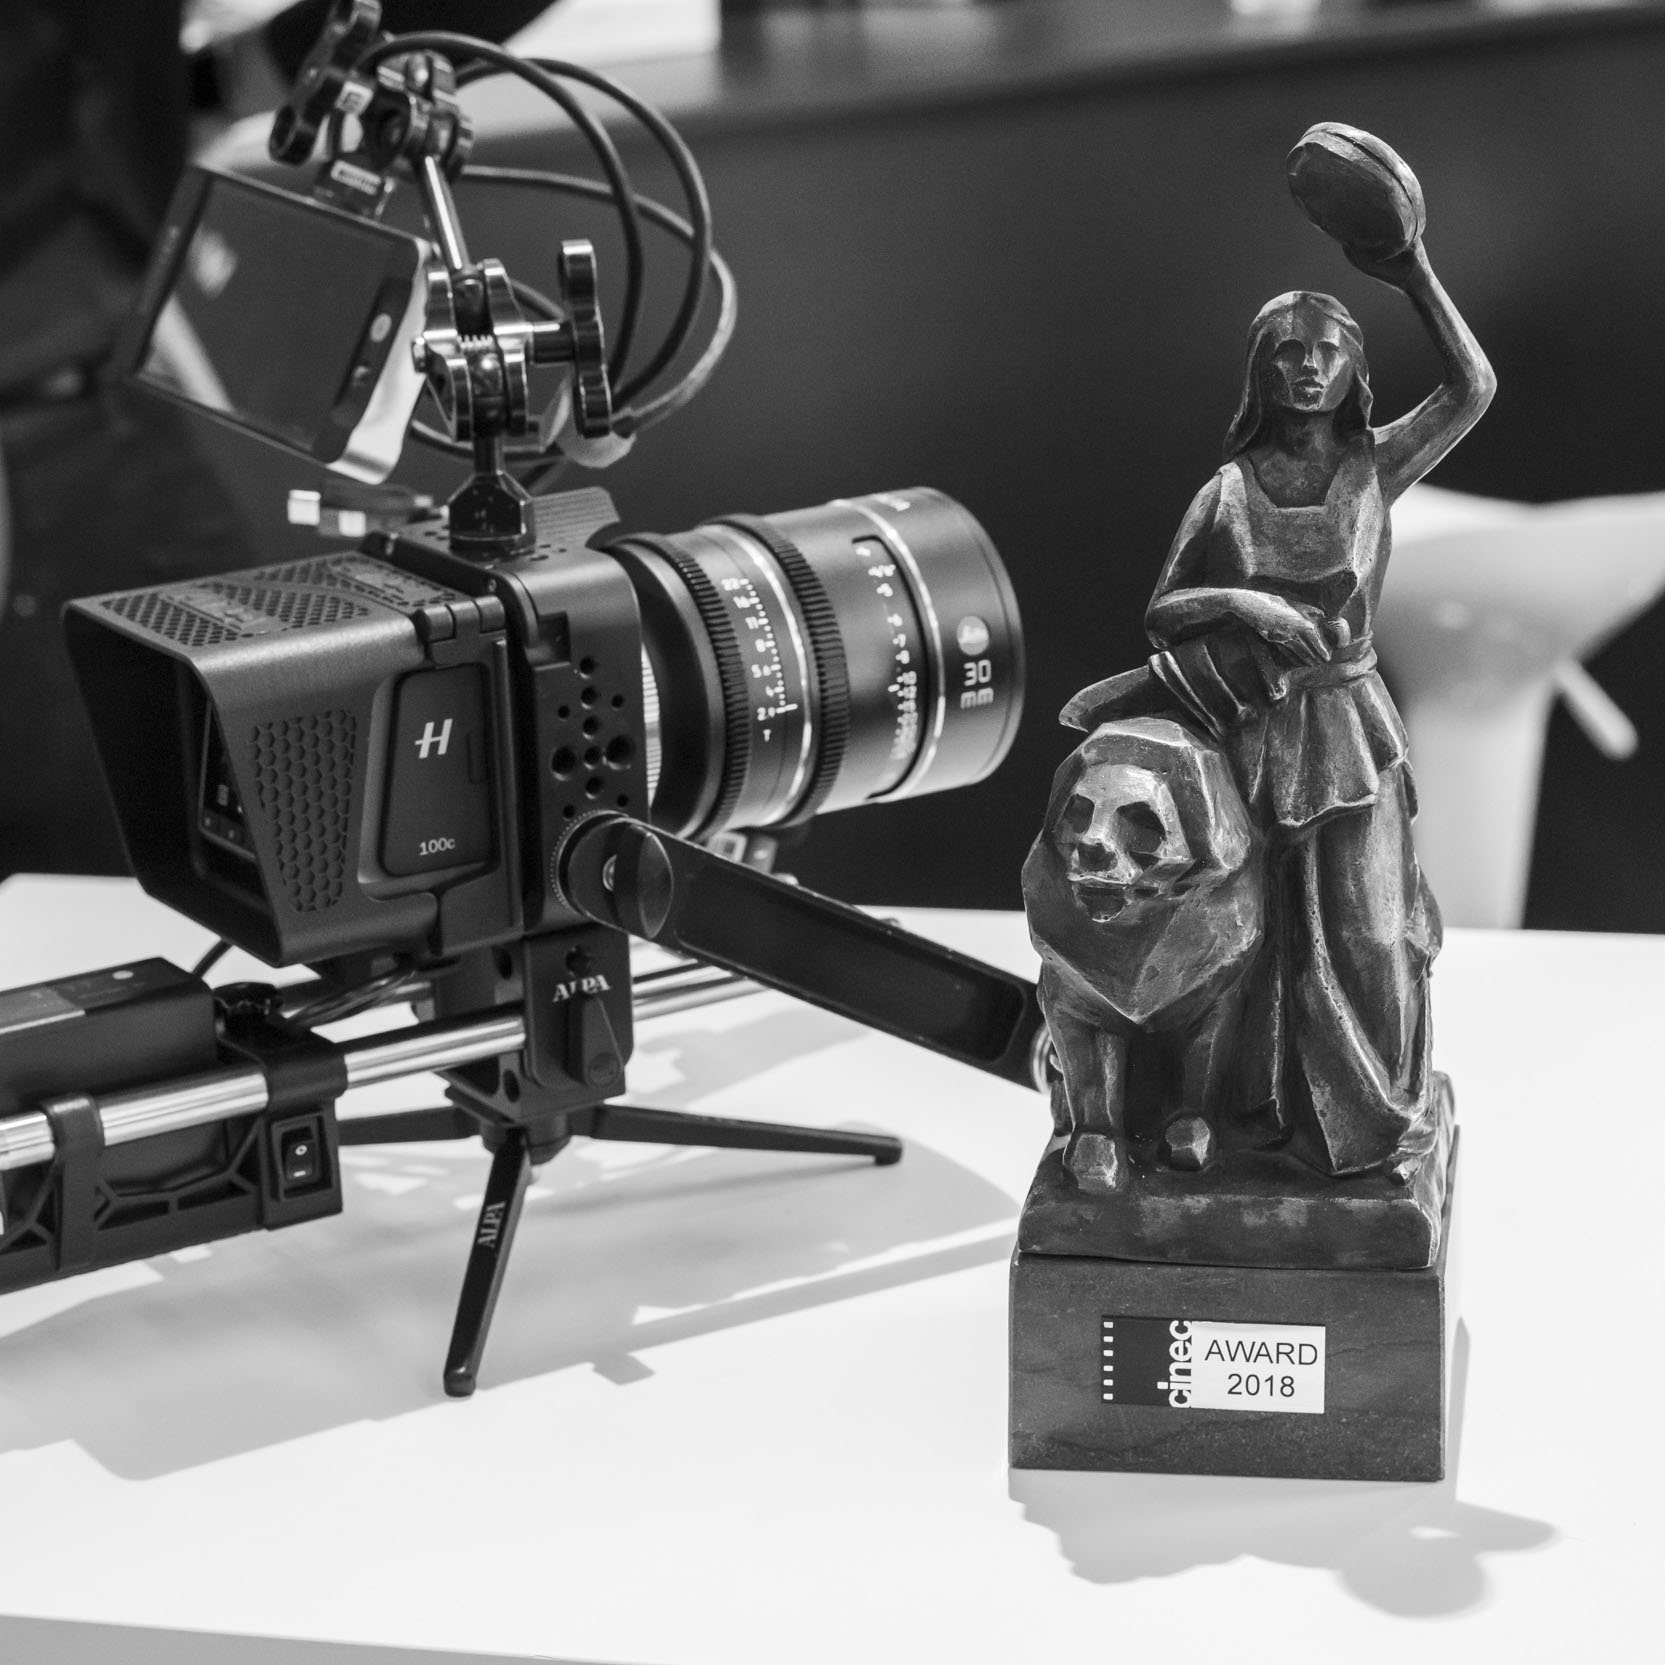 WE WON! PLATON wins cinecAward 2018